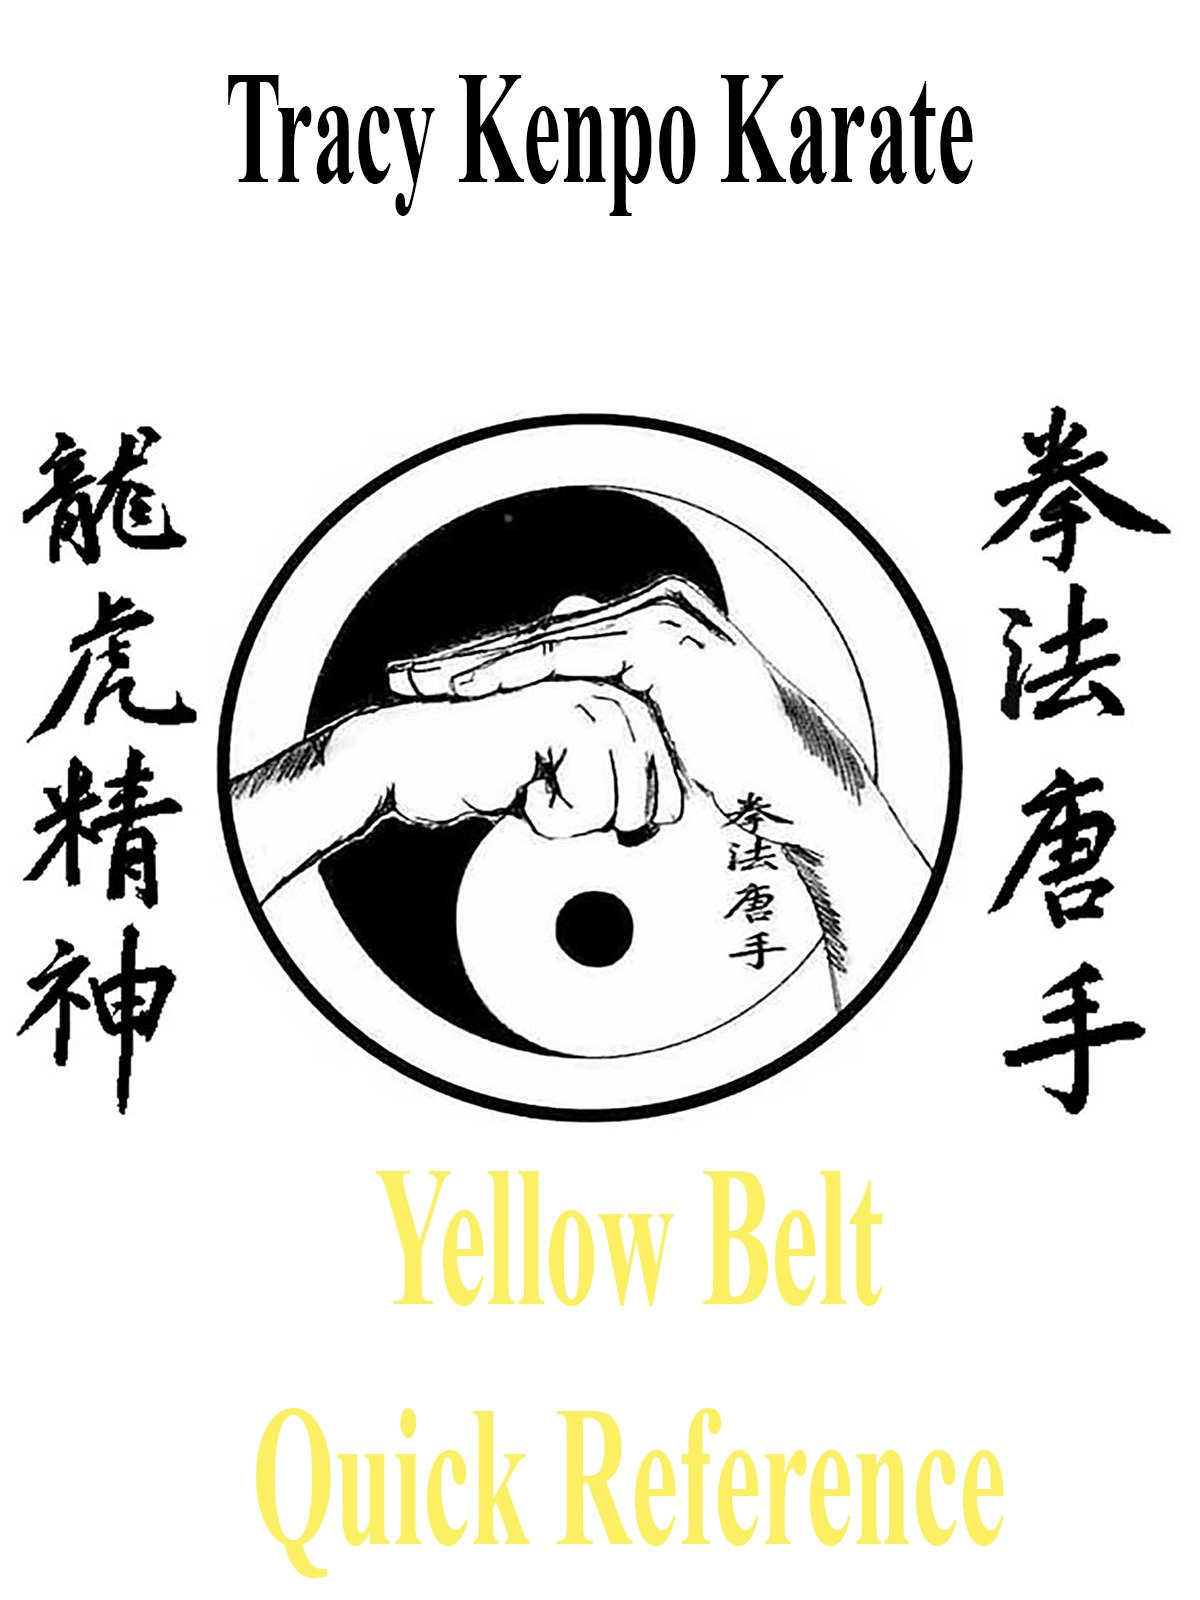 Tracy Kenpo Yellow Belt Quick Reference on Amazon Prime Instant Video UK